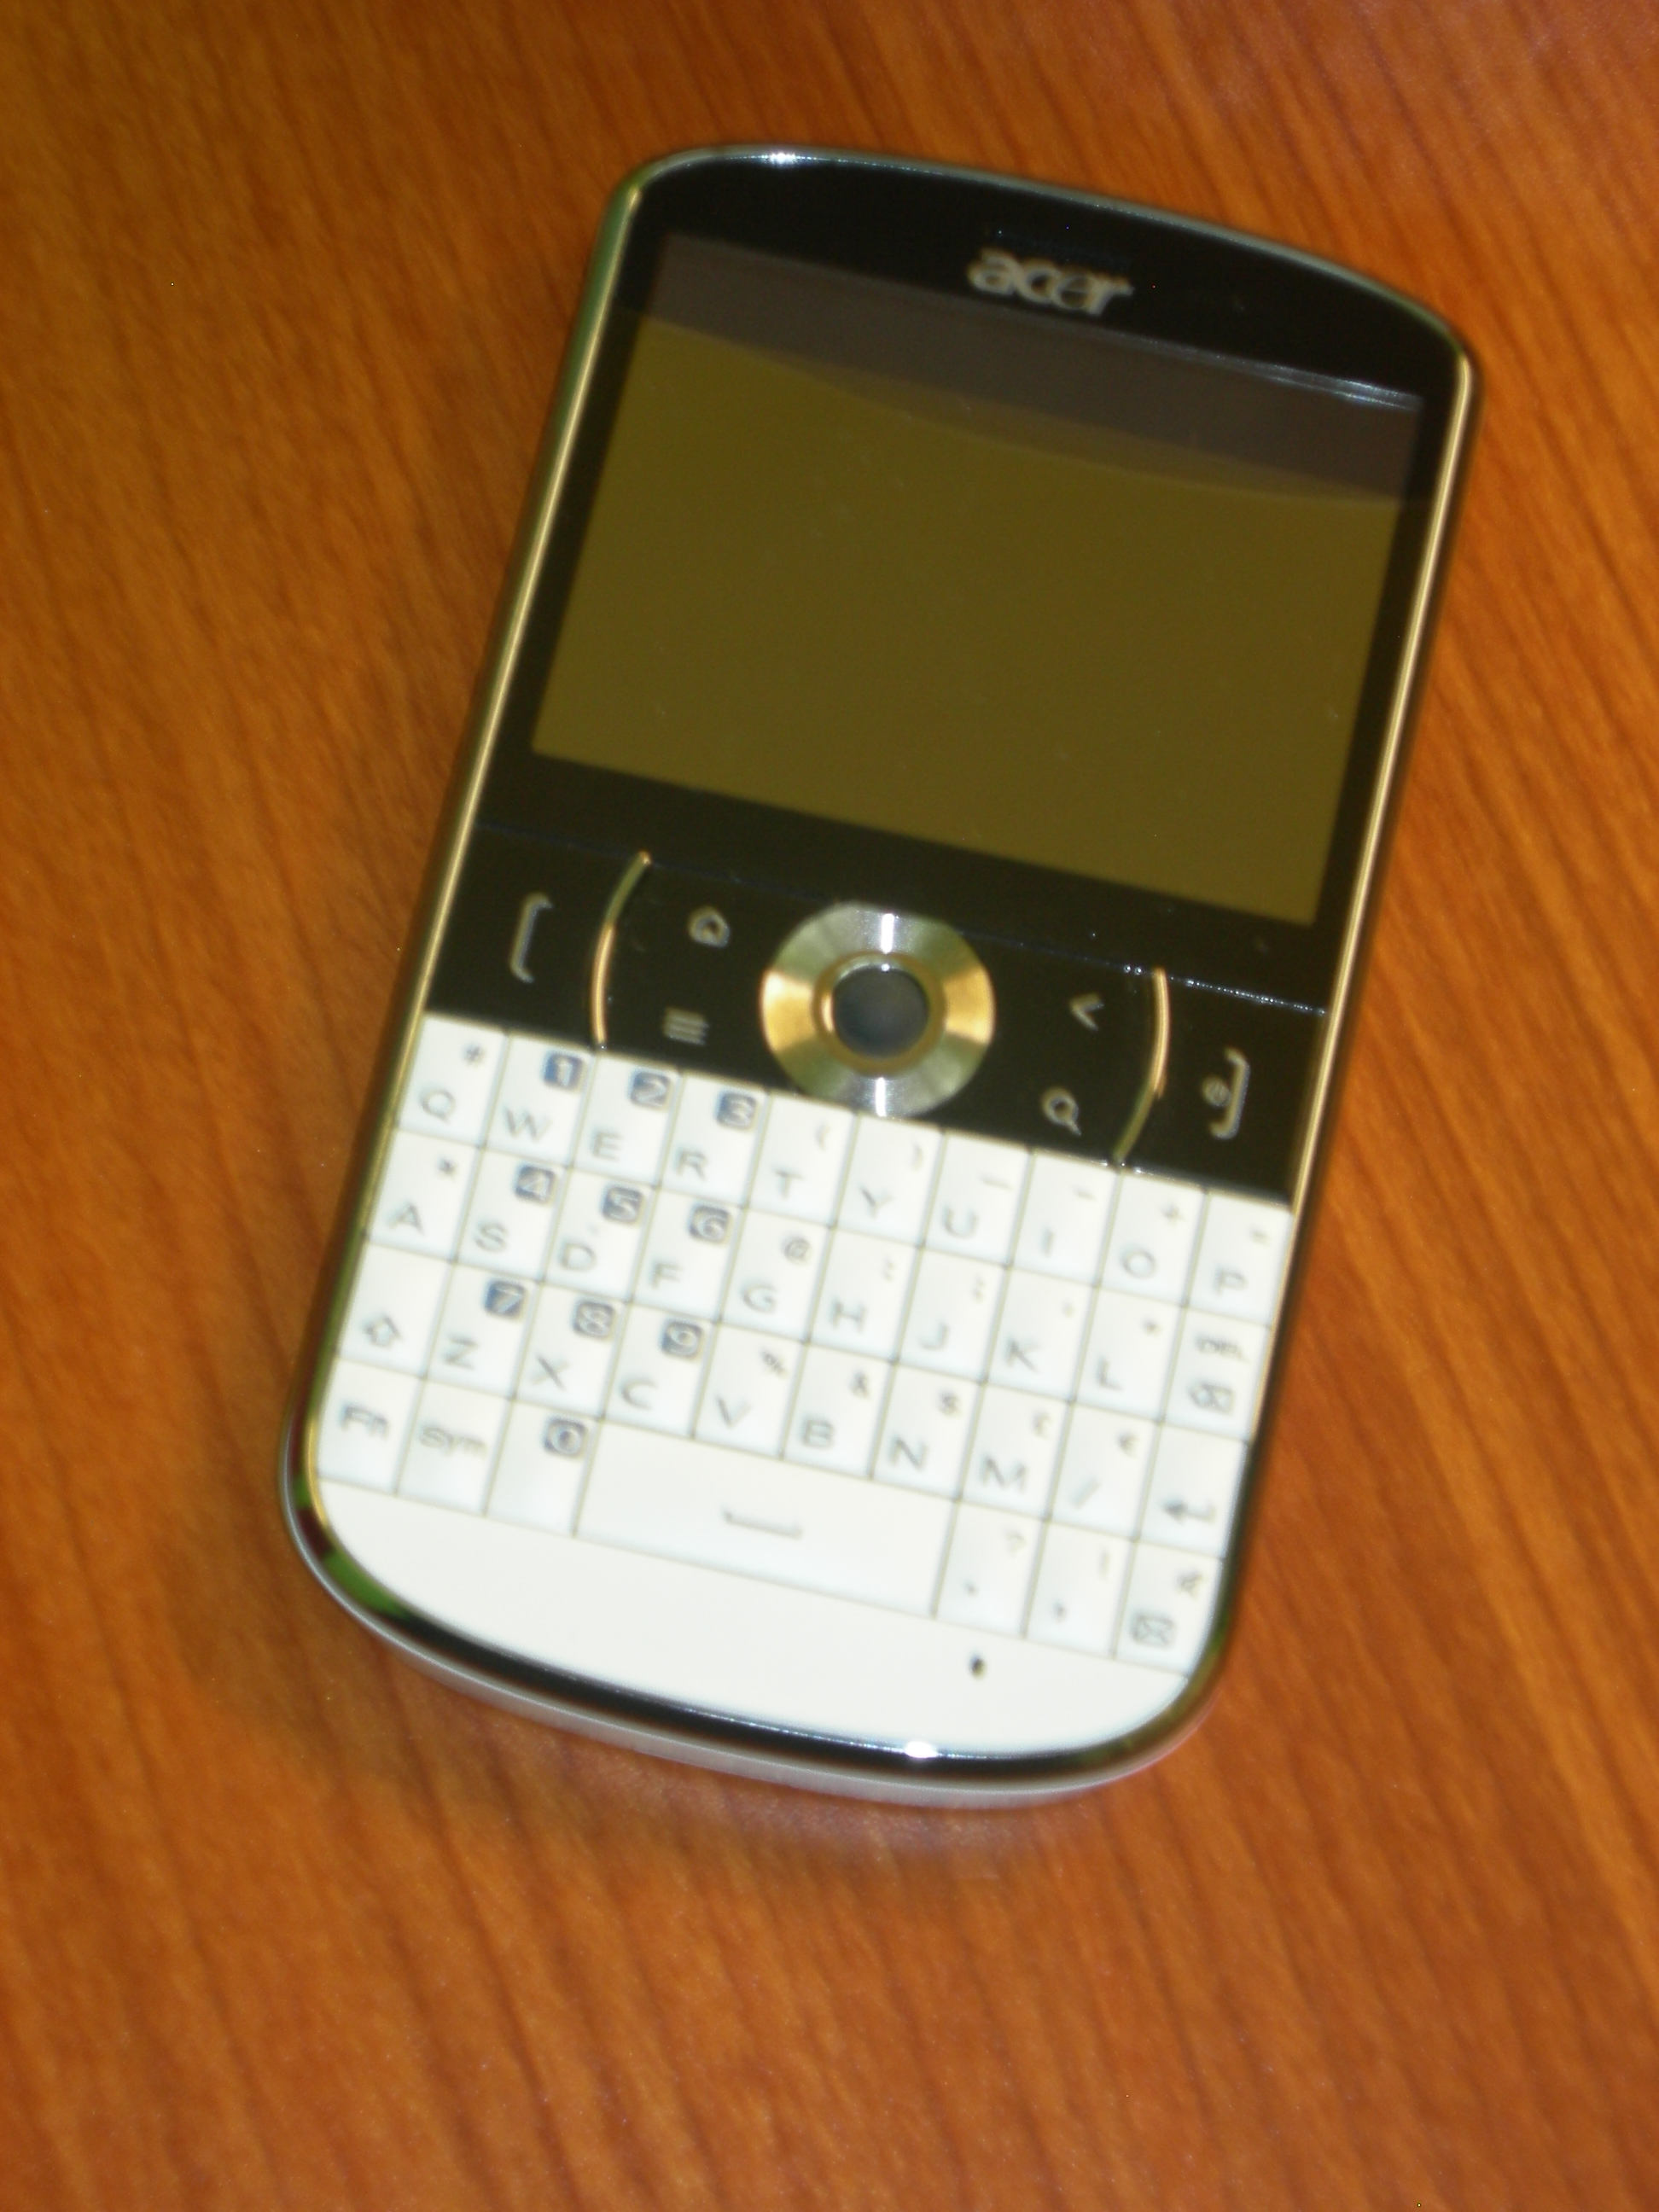 Acer betouch e130 wikipedia.